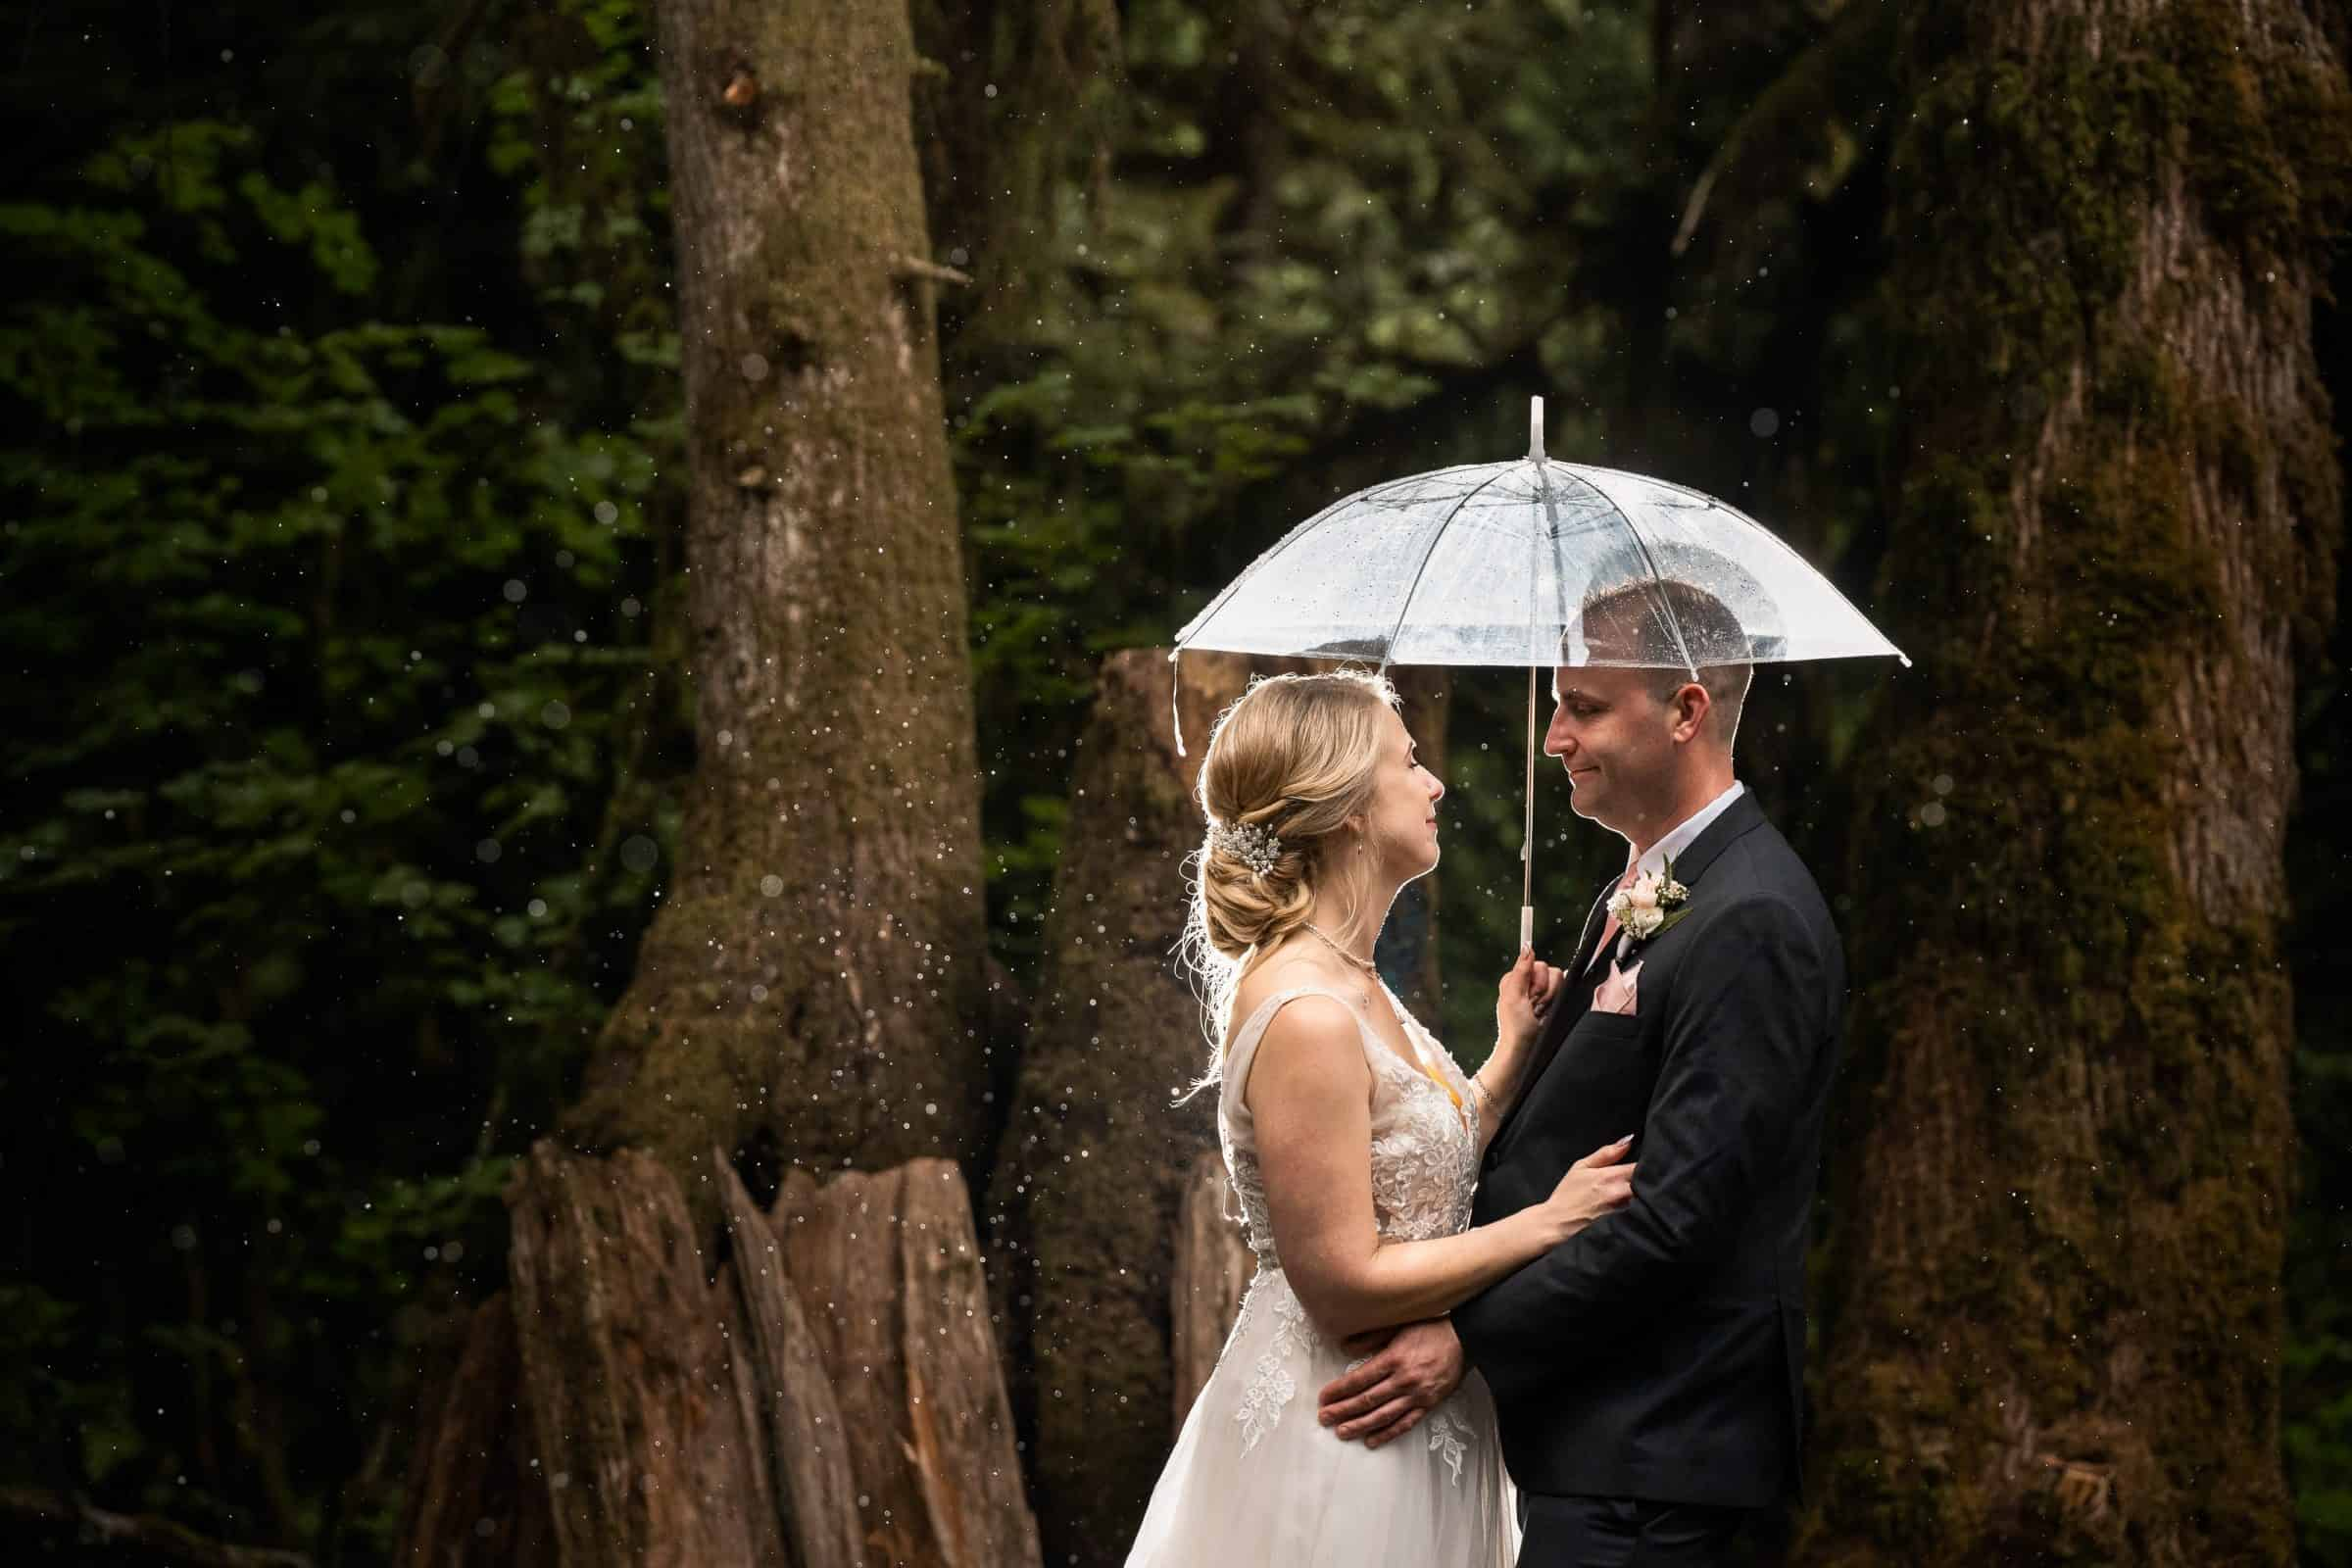 bride and groom holding each other under umbrella in the rain